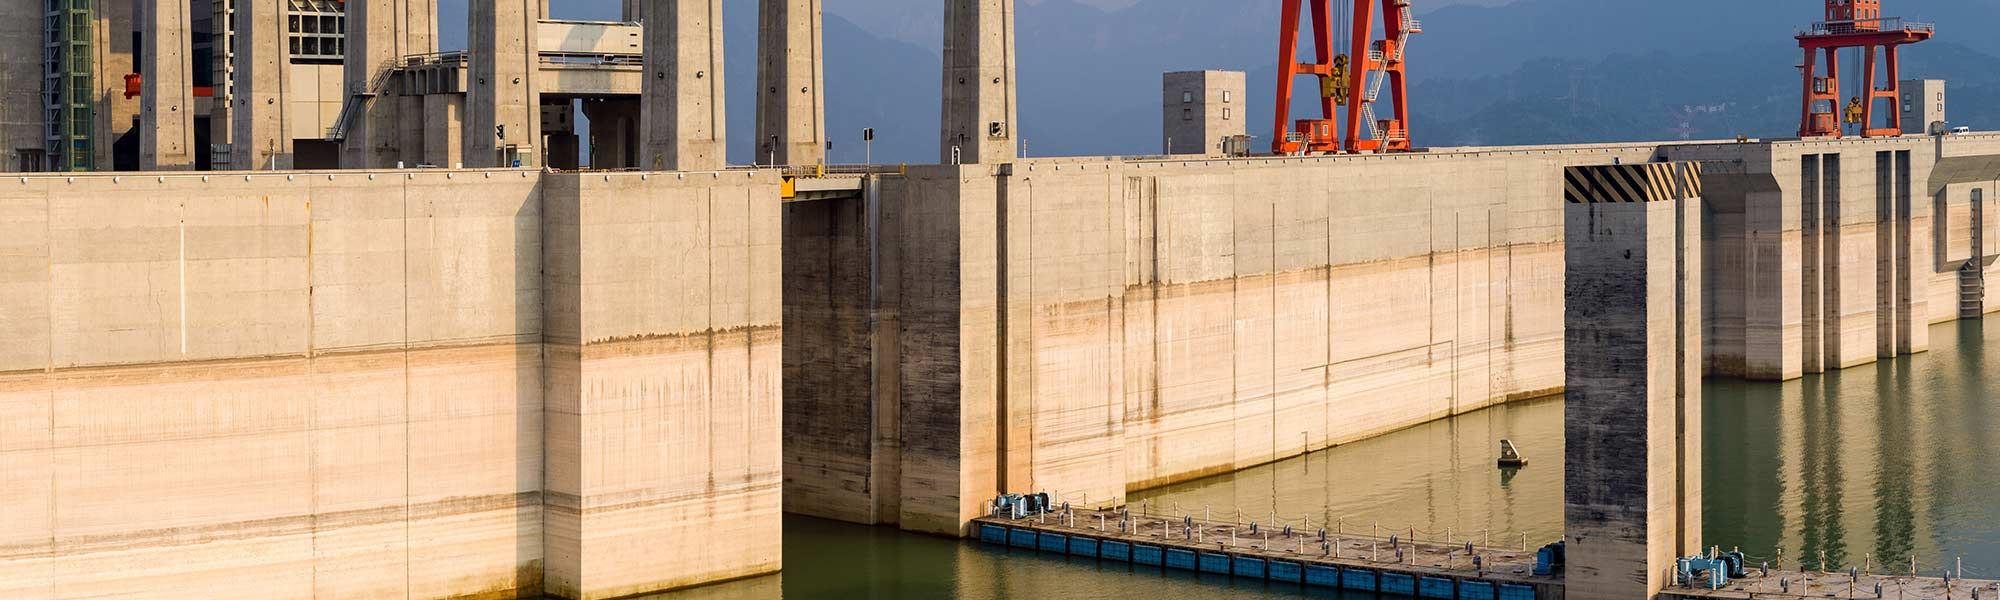 Geo-construction sonic drilling needs for dam monitoring